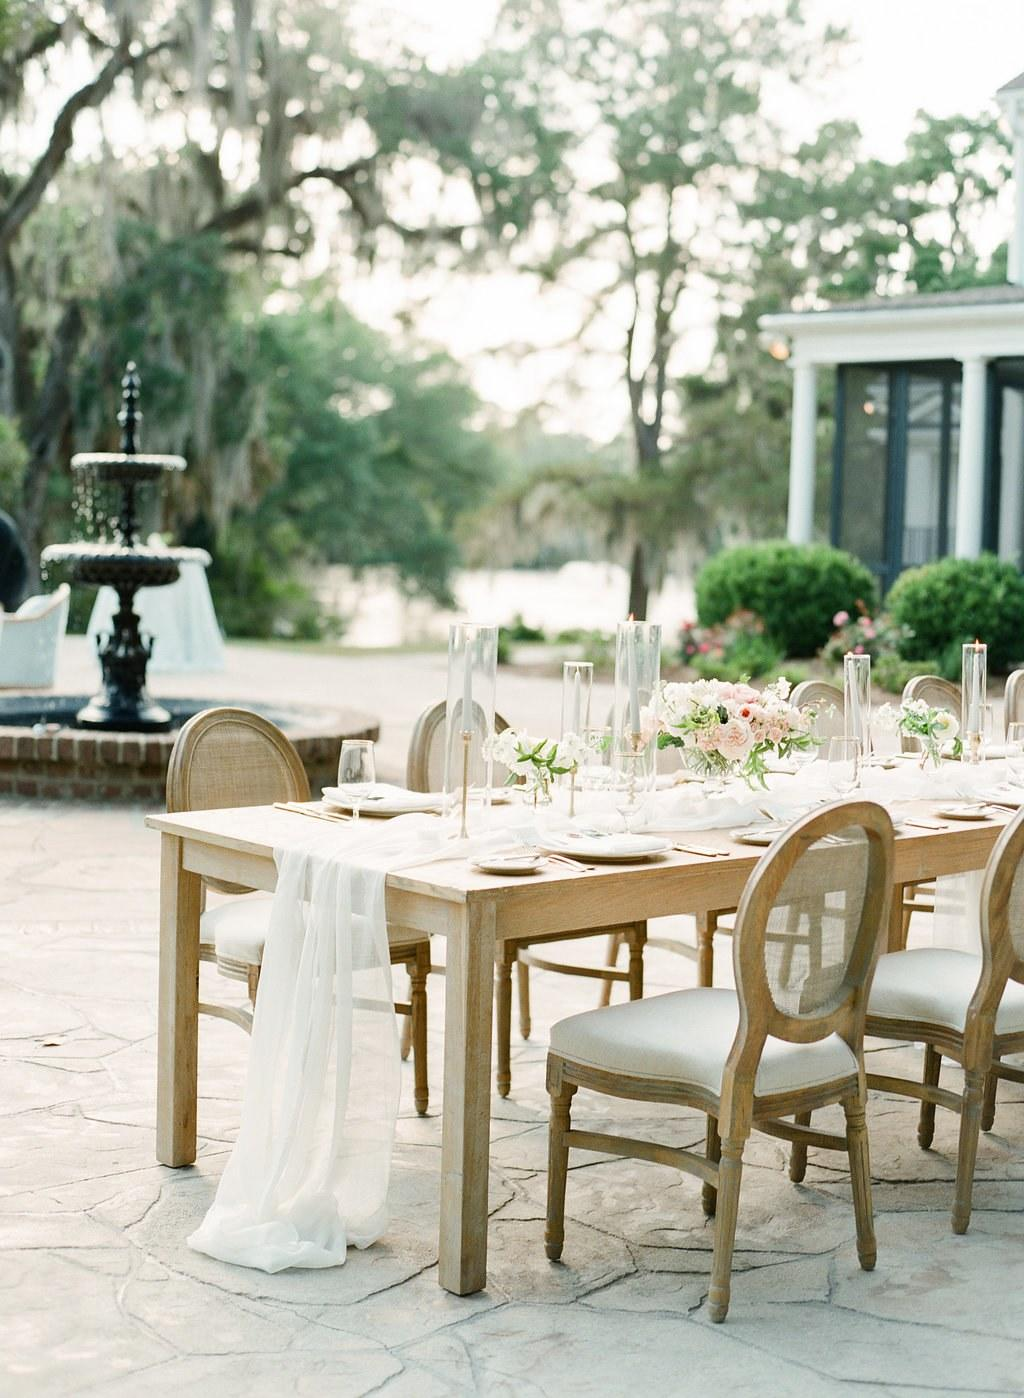 2019 Wedding Reception Trends Straight From the Experts